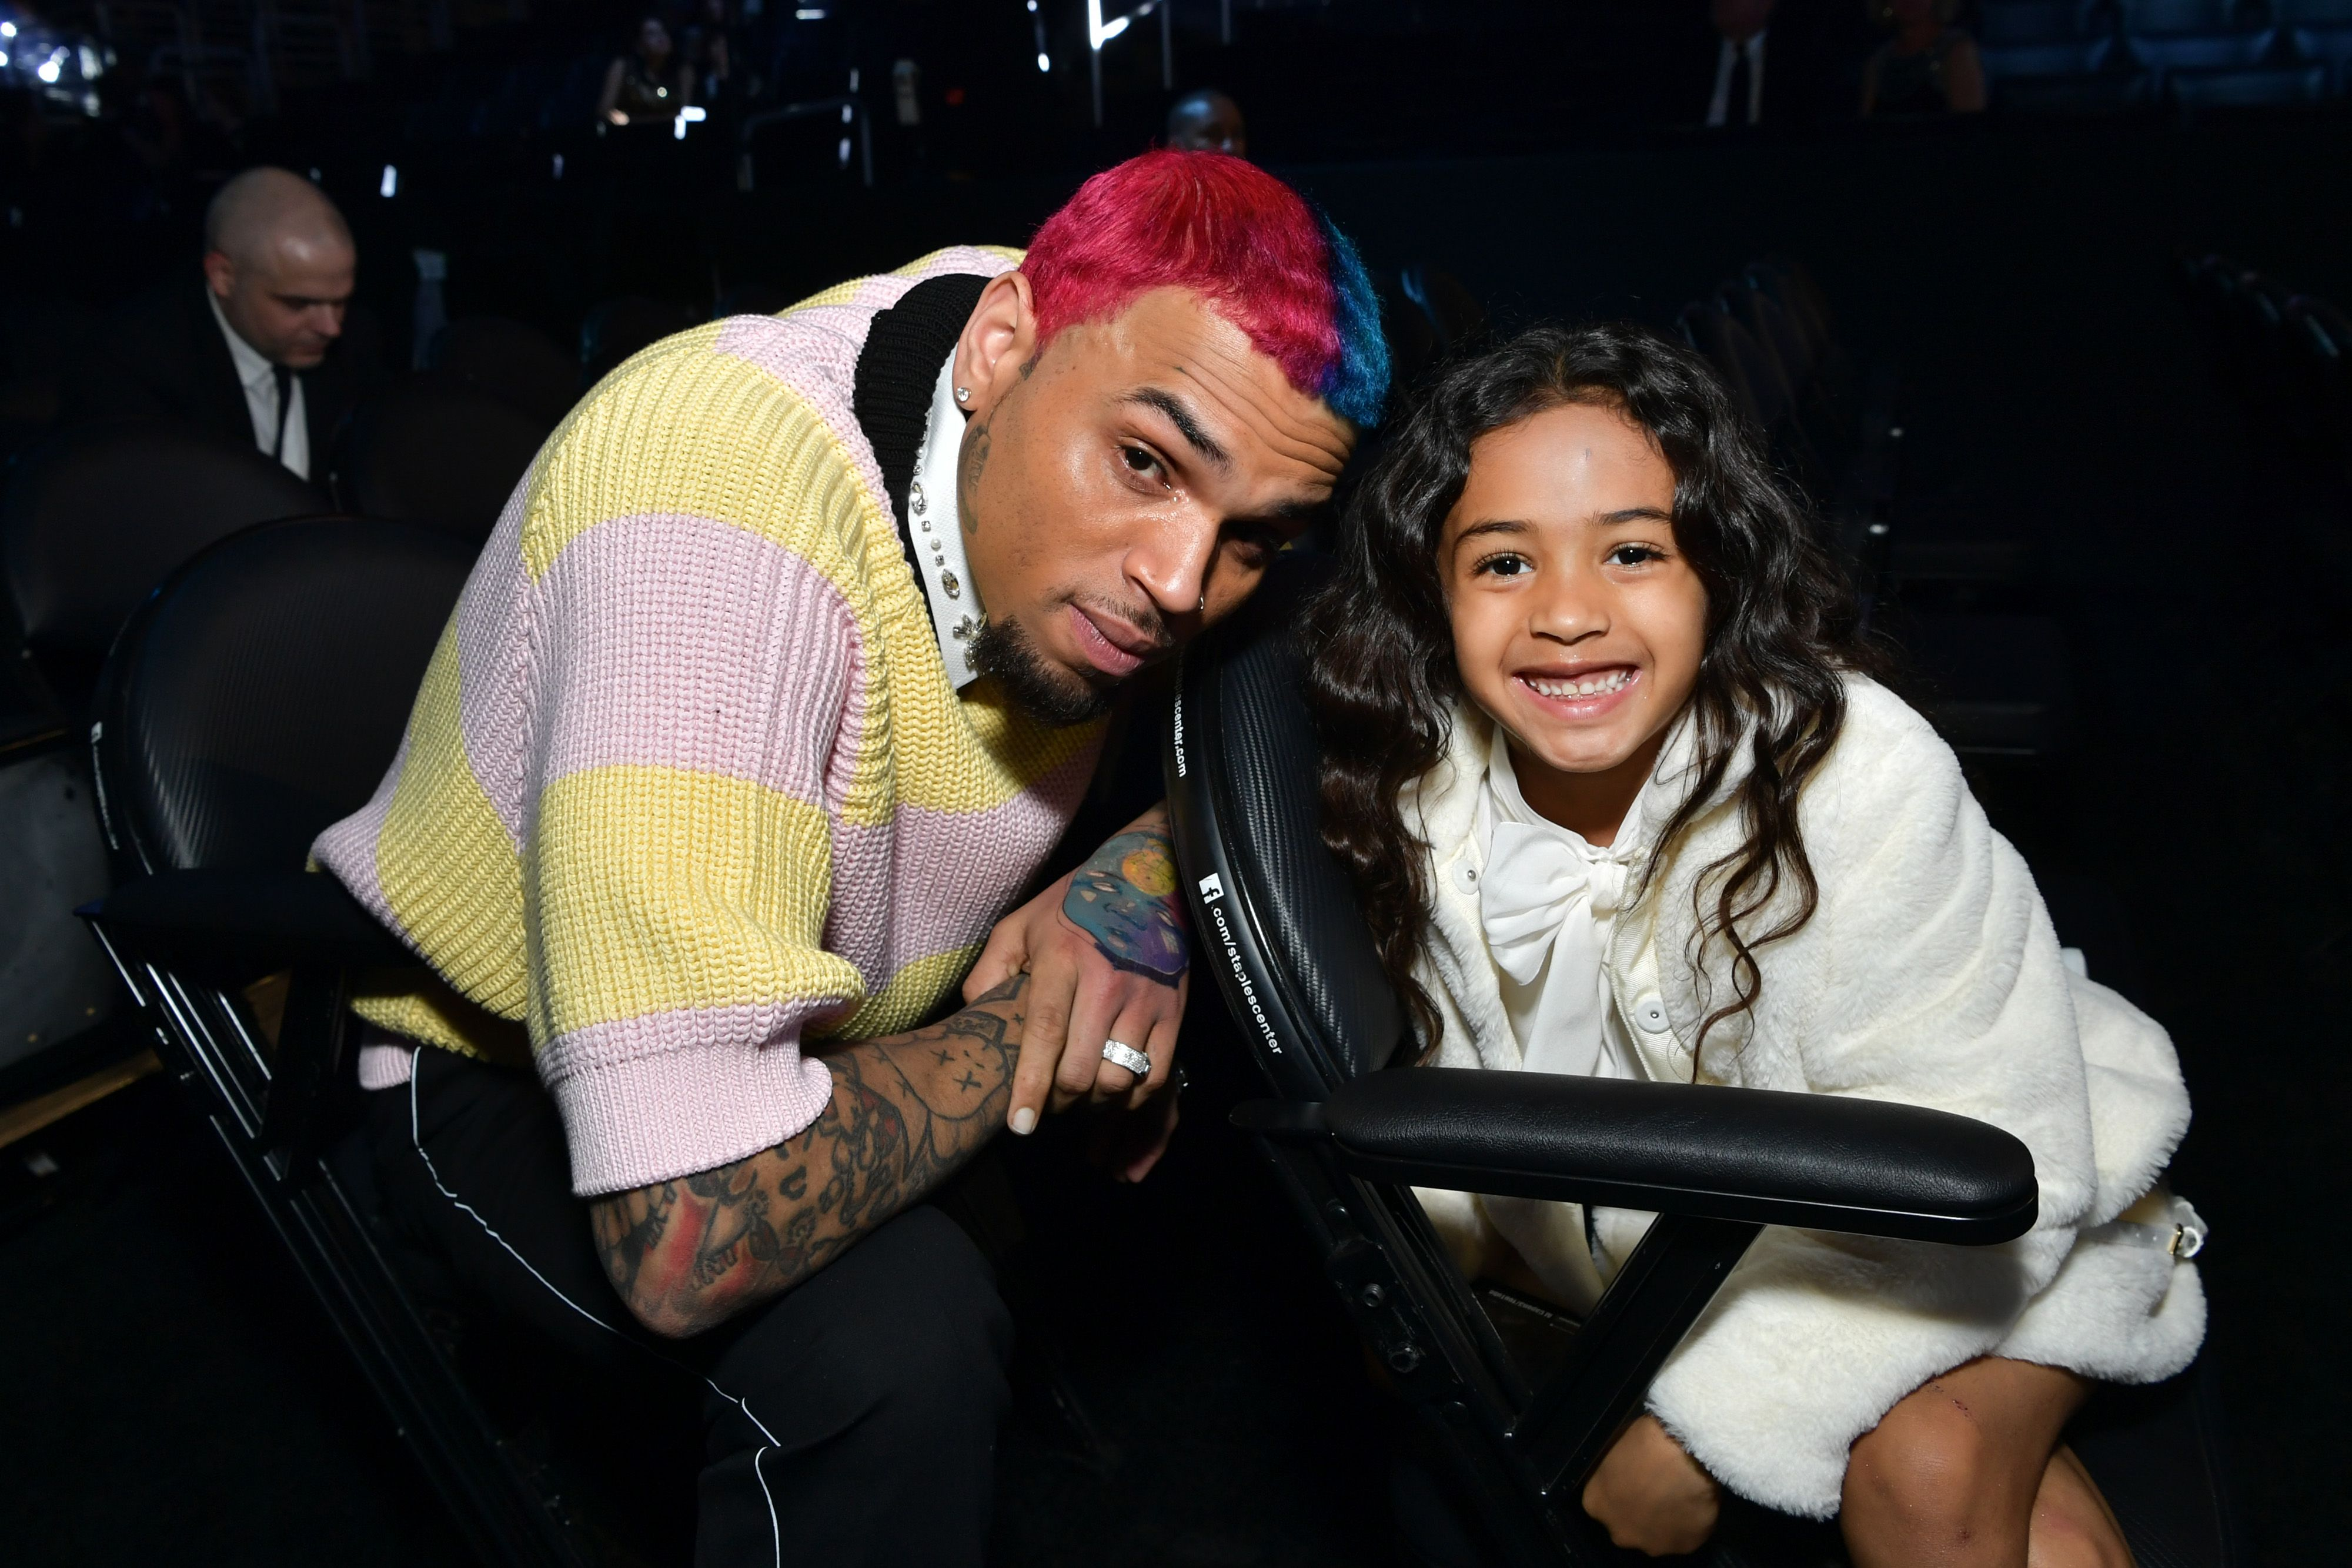 Chris Brown and Royalty Brown at the 62nd Annual Grammy Awards on January 26, 2020 | Photo: Getty Images